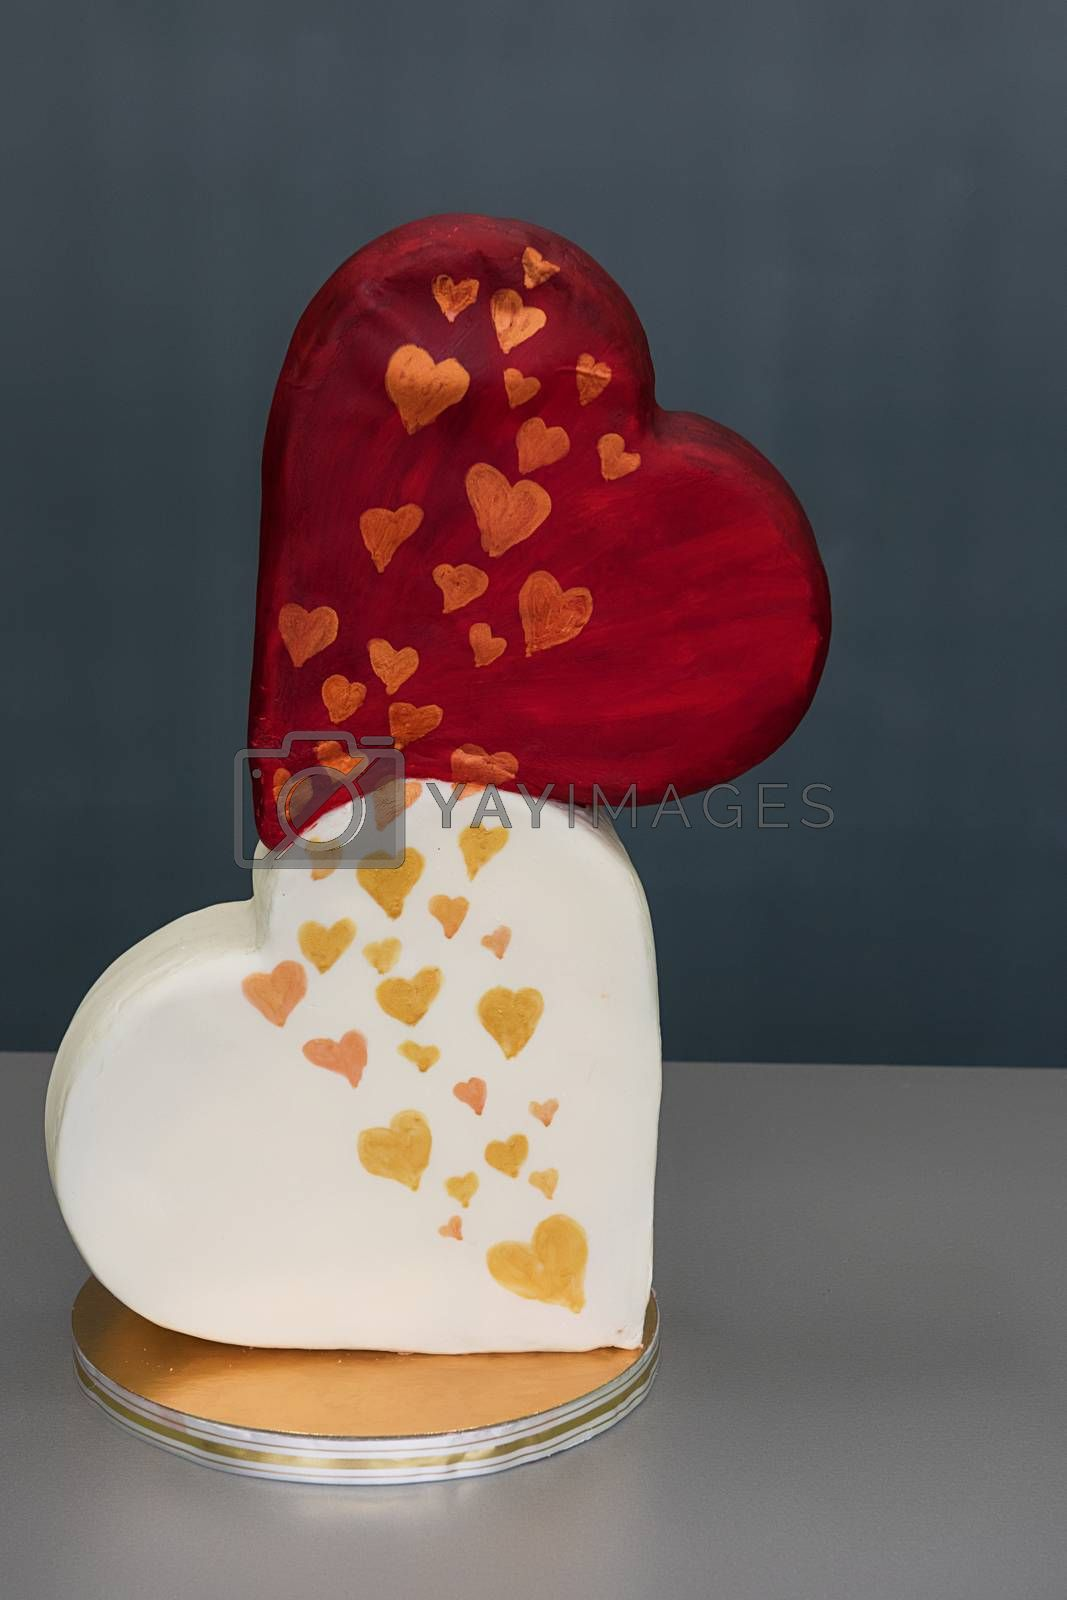 Wedding cake as two hearts on grey background